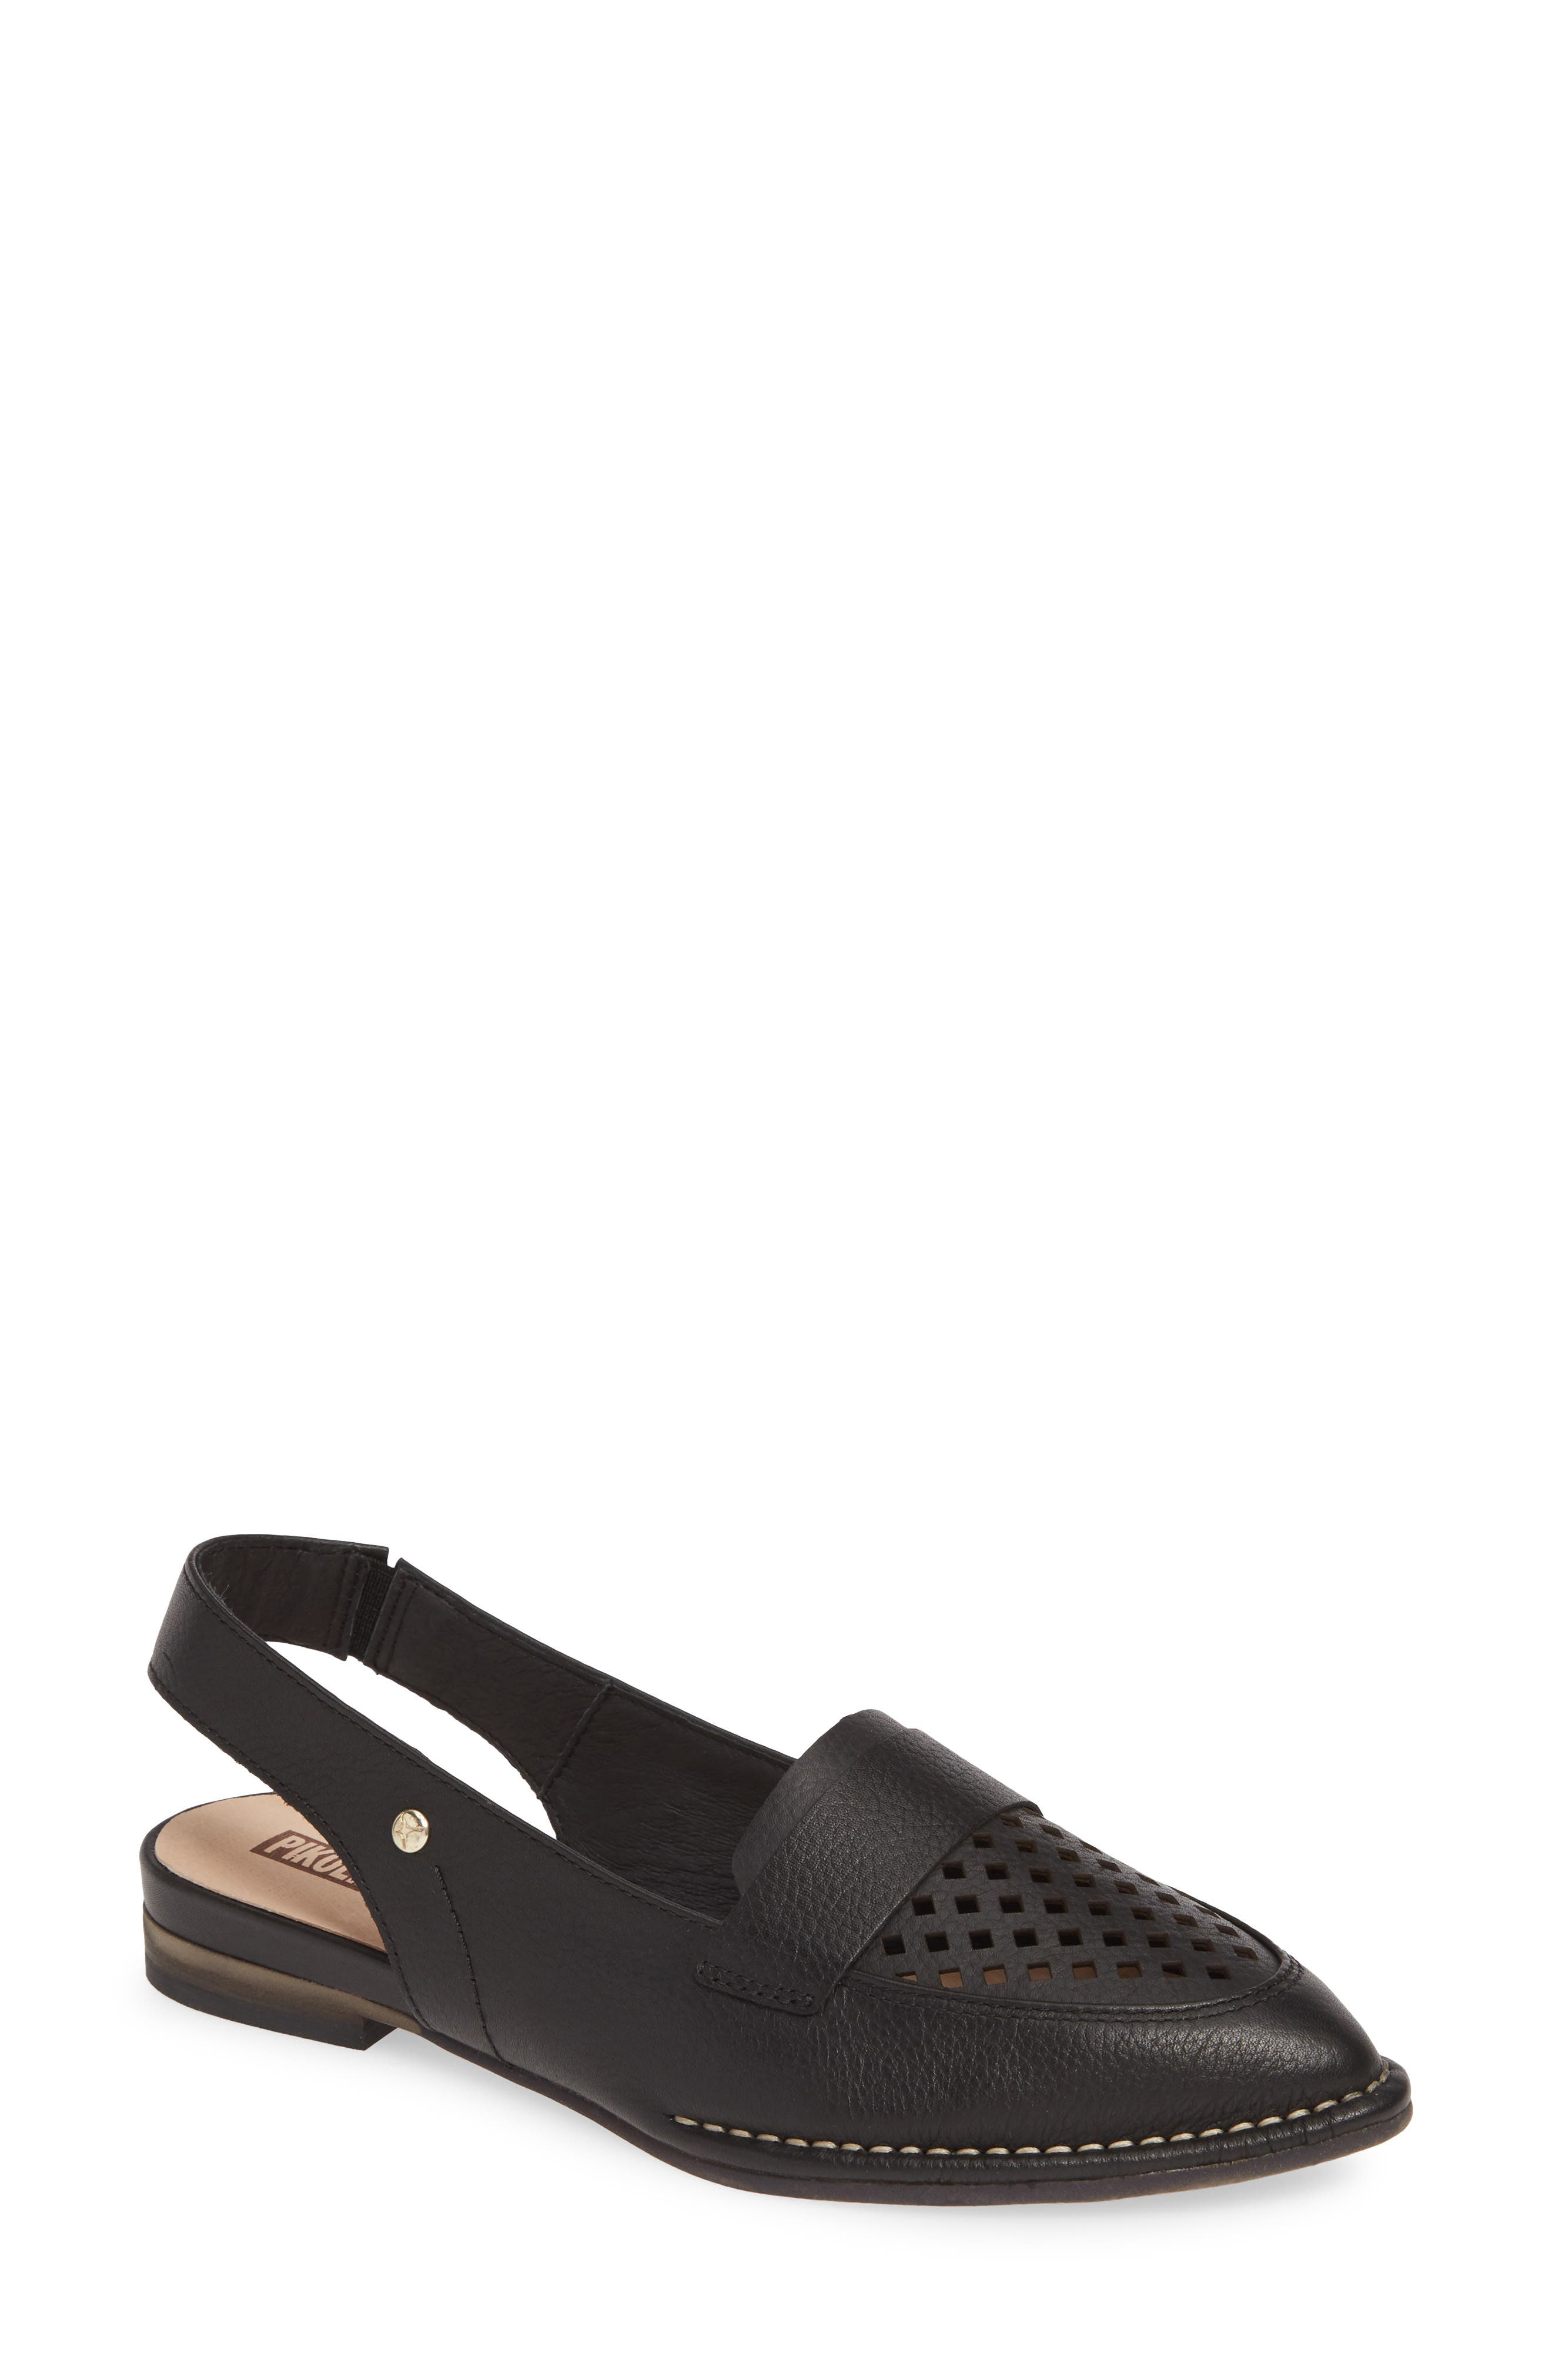 Pikolinos Caleta Perforated Slingback Flat, Black